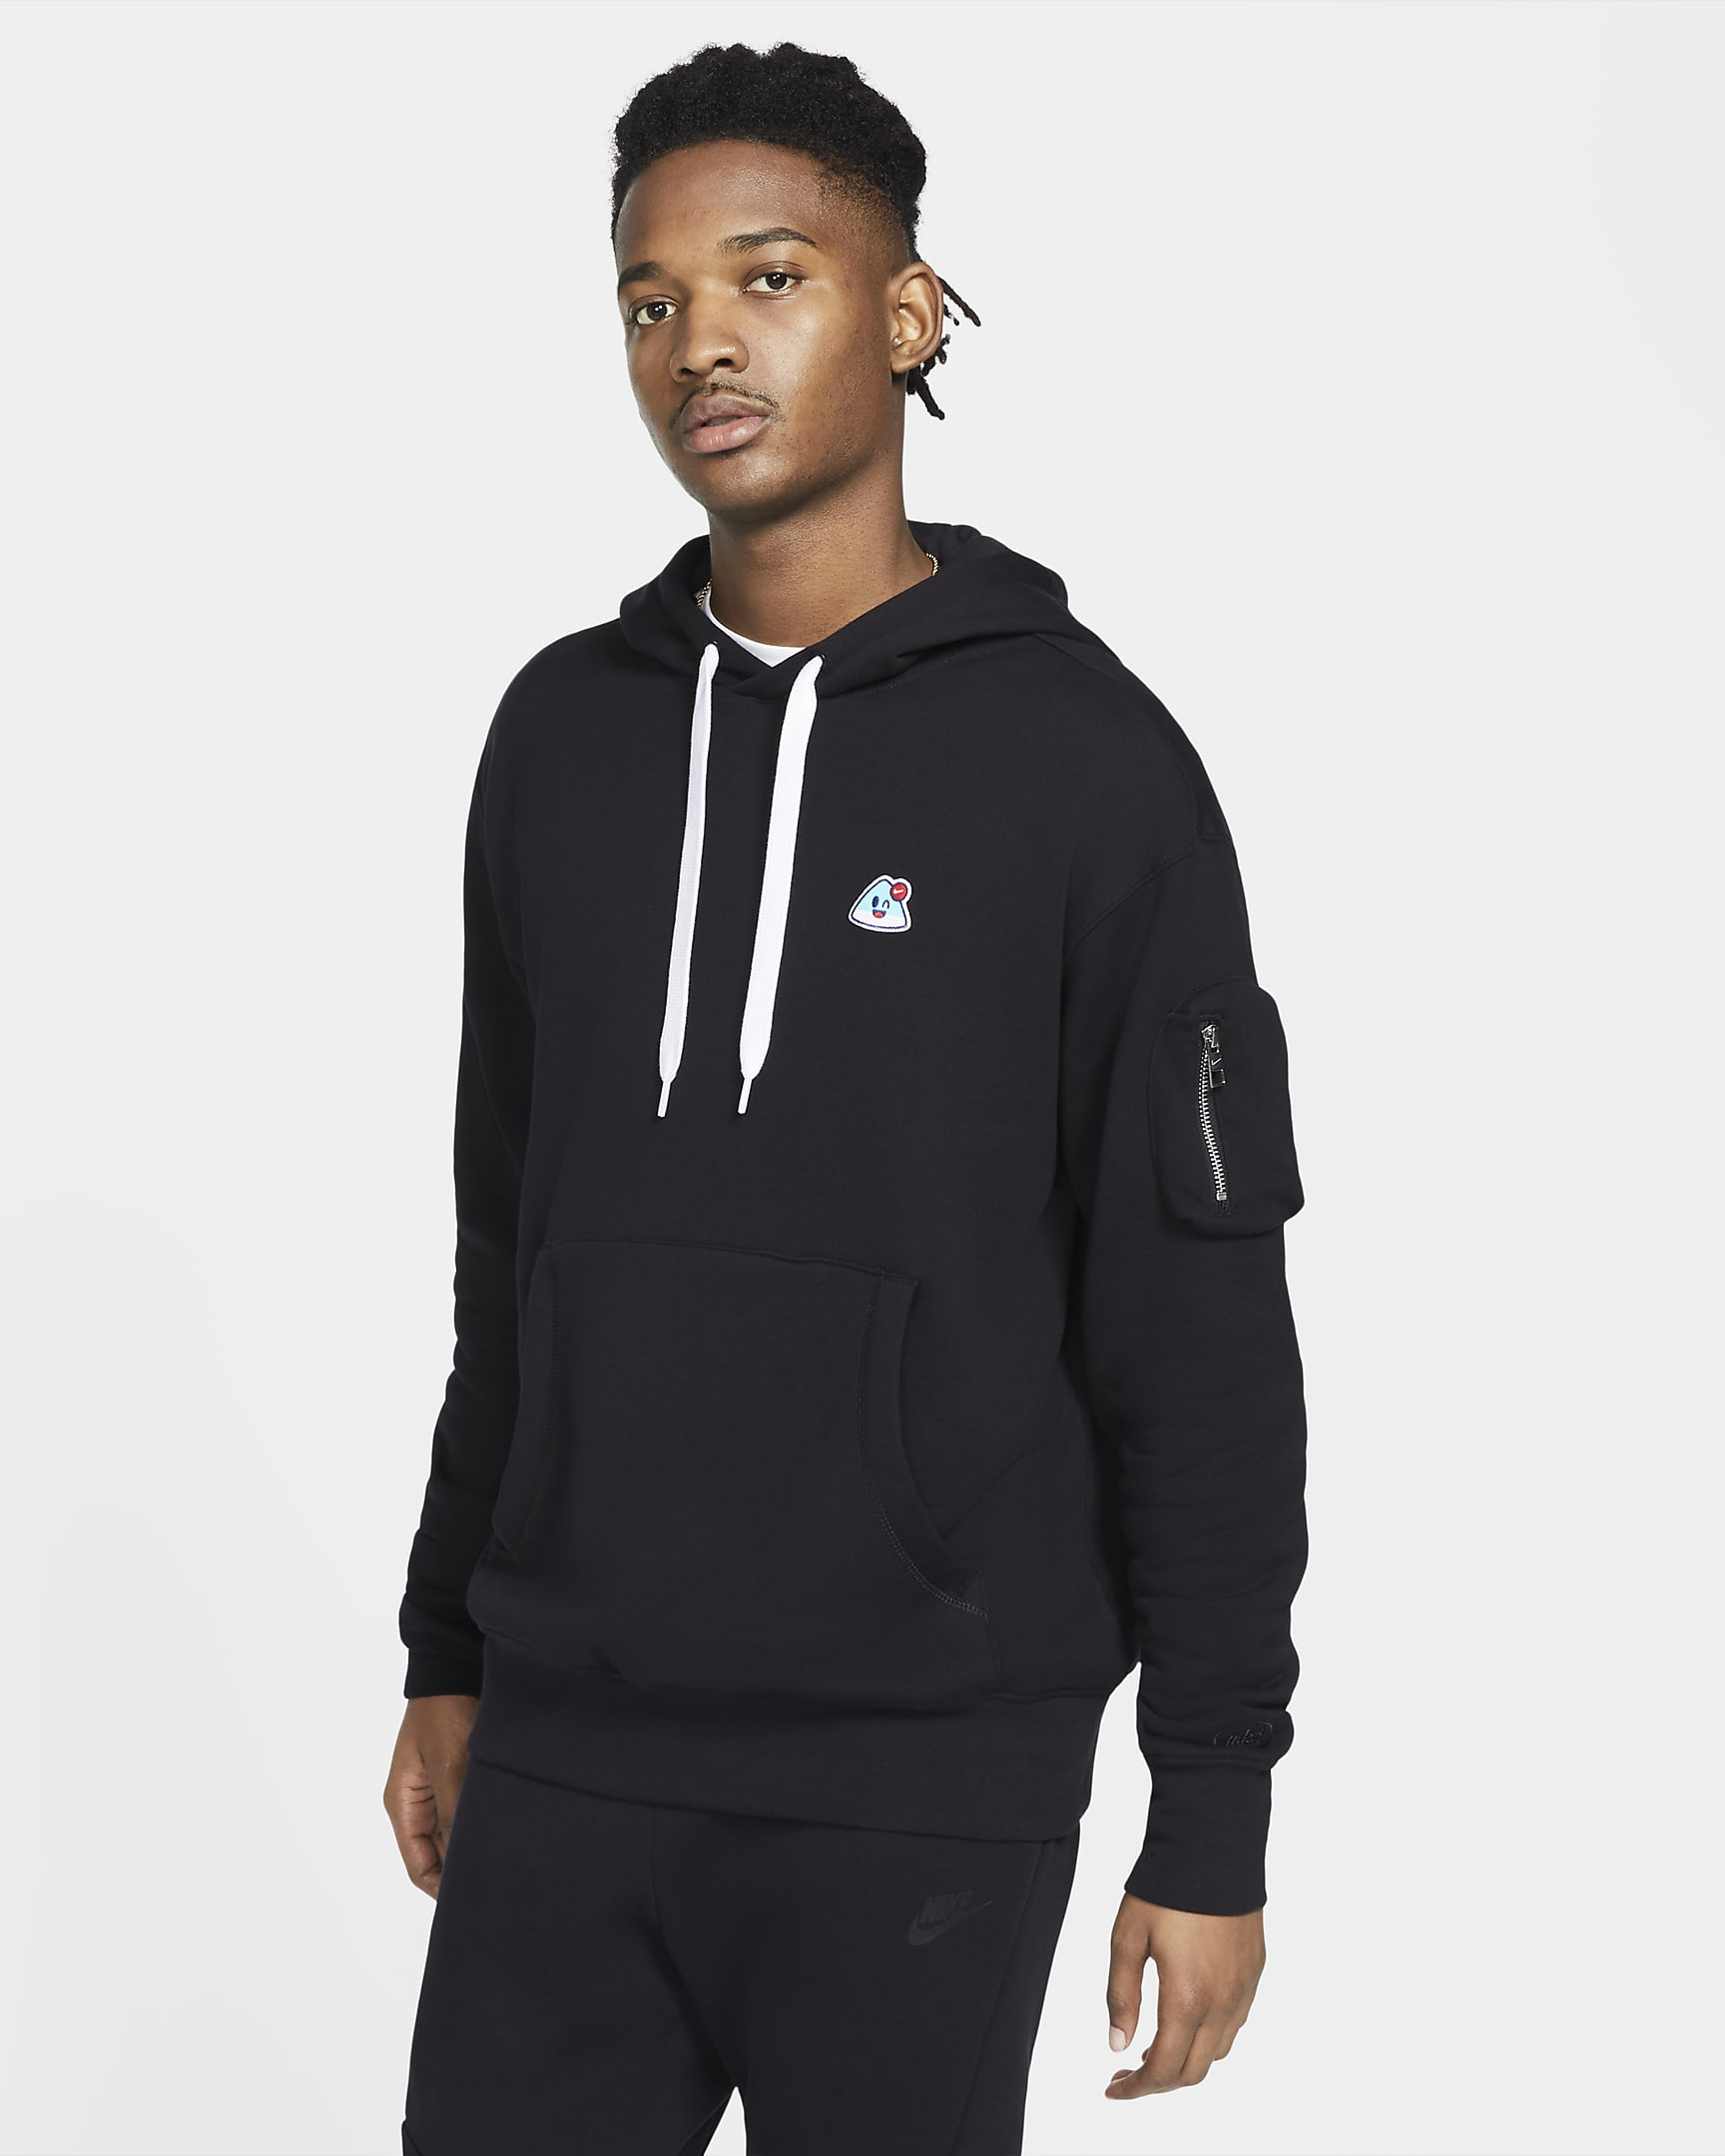 sportswear-mens-french-terry-pullover-hoodie-SL47Jk-6